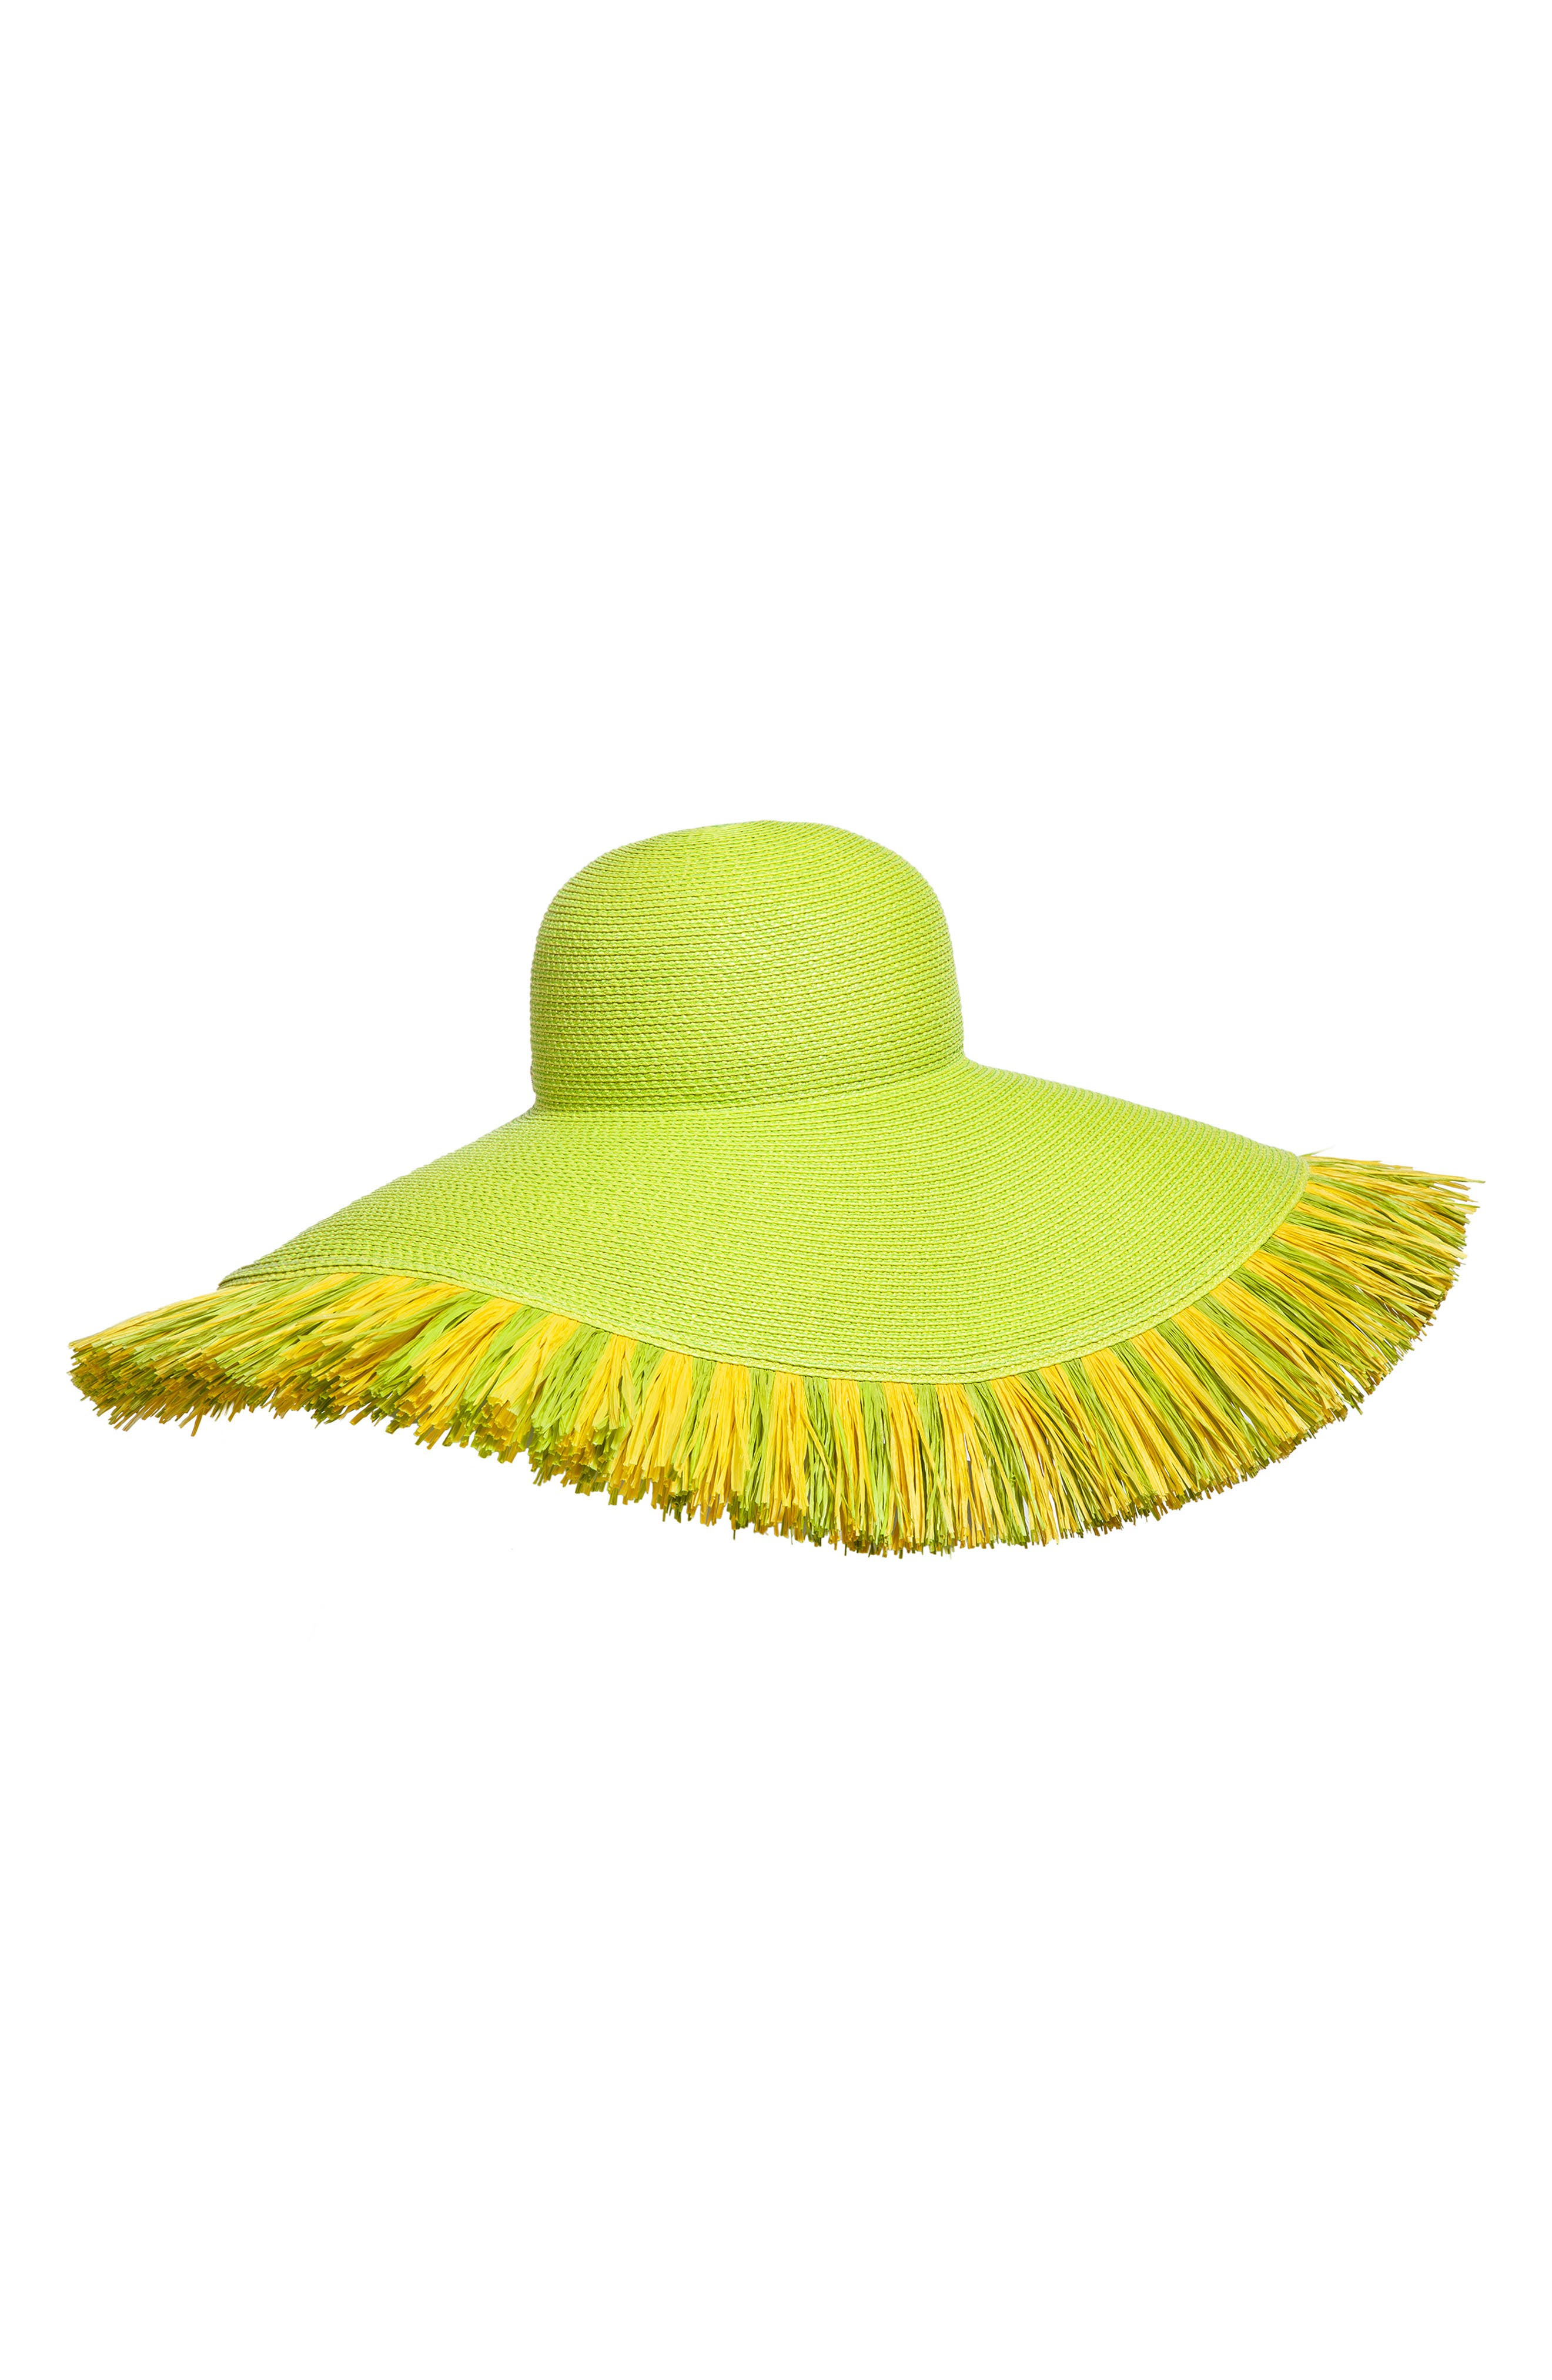 Fringed Squishee<sup>®</sup> Packable Floppy Hat,                         Main,                         color, 300